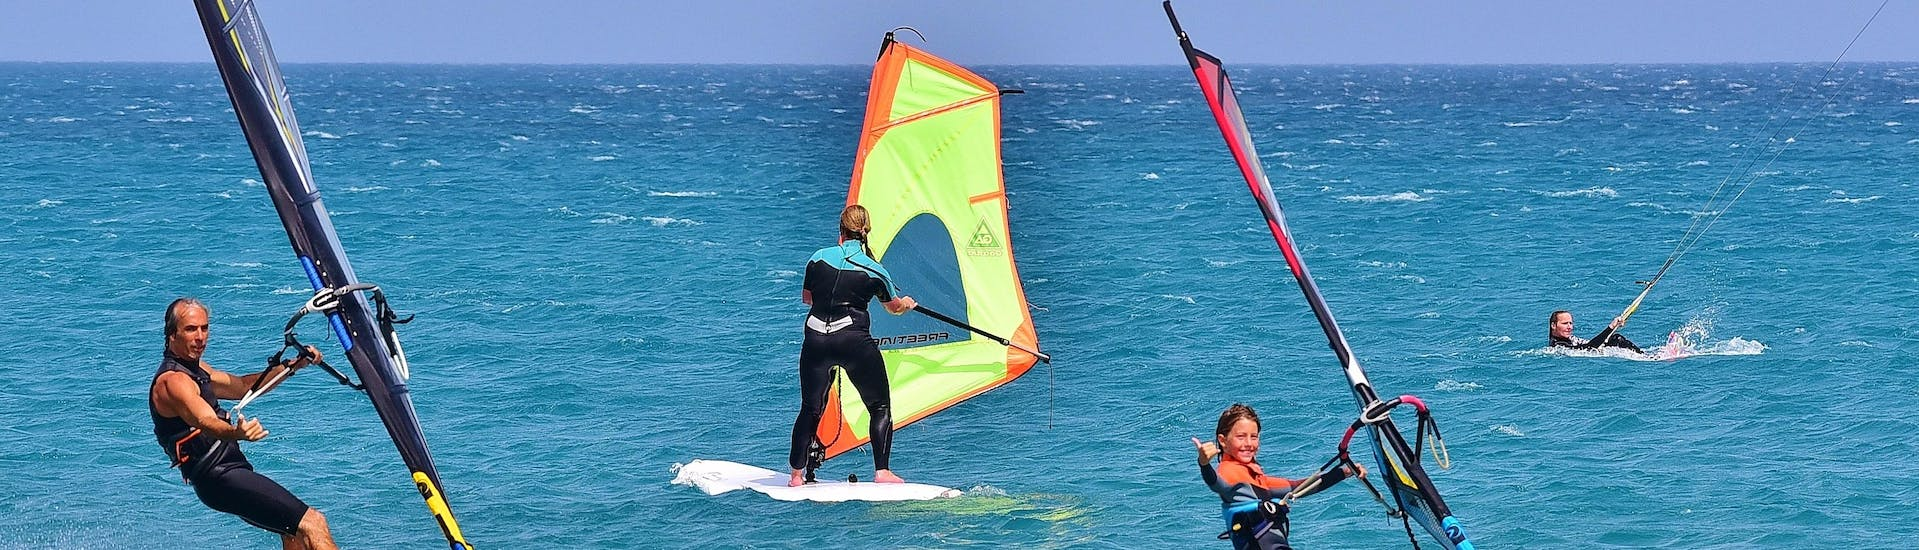 Windsurfing Lessons for Kids and Adults - Beginner